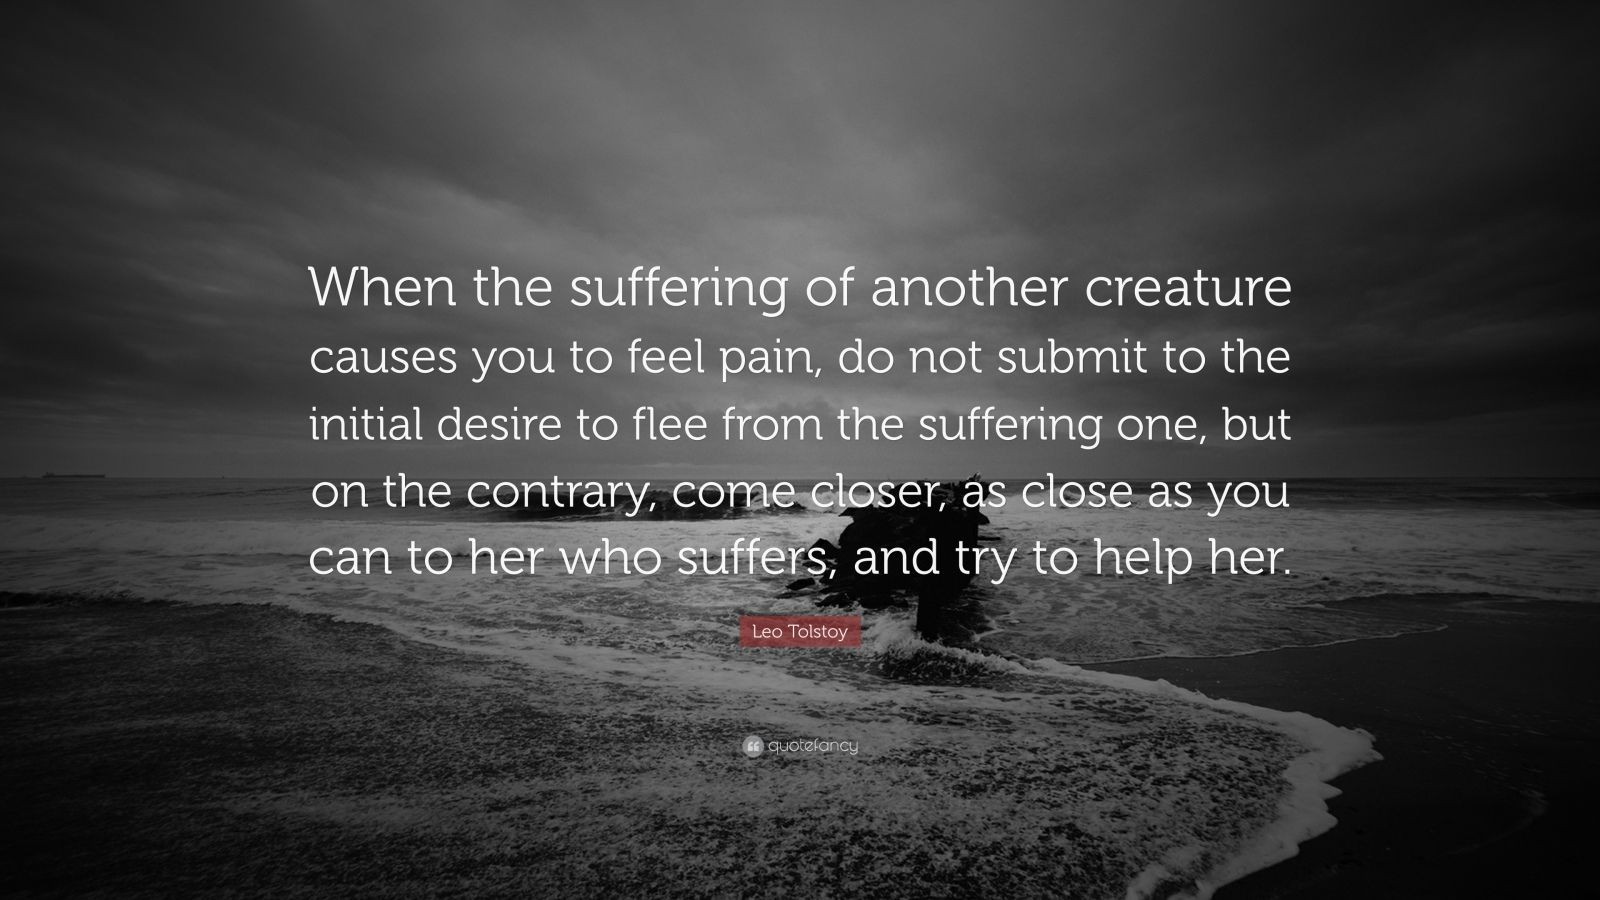 "Leo Tolstoy Quote: ""When the suffering of another creature causes you to feel pain, do not submit to the initial desire to flee from the suffering one, but on the contrary, come closer, as close as you can to her who suffers, and try to help her."""